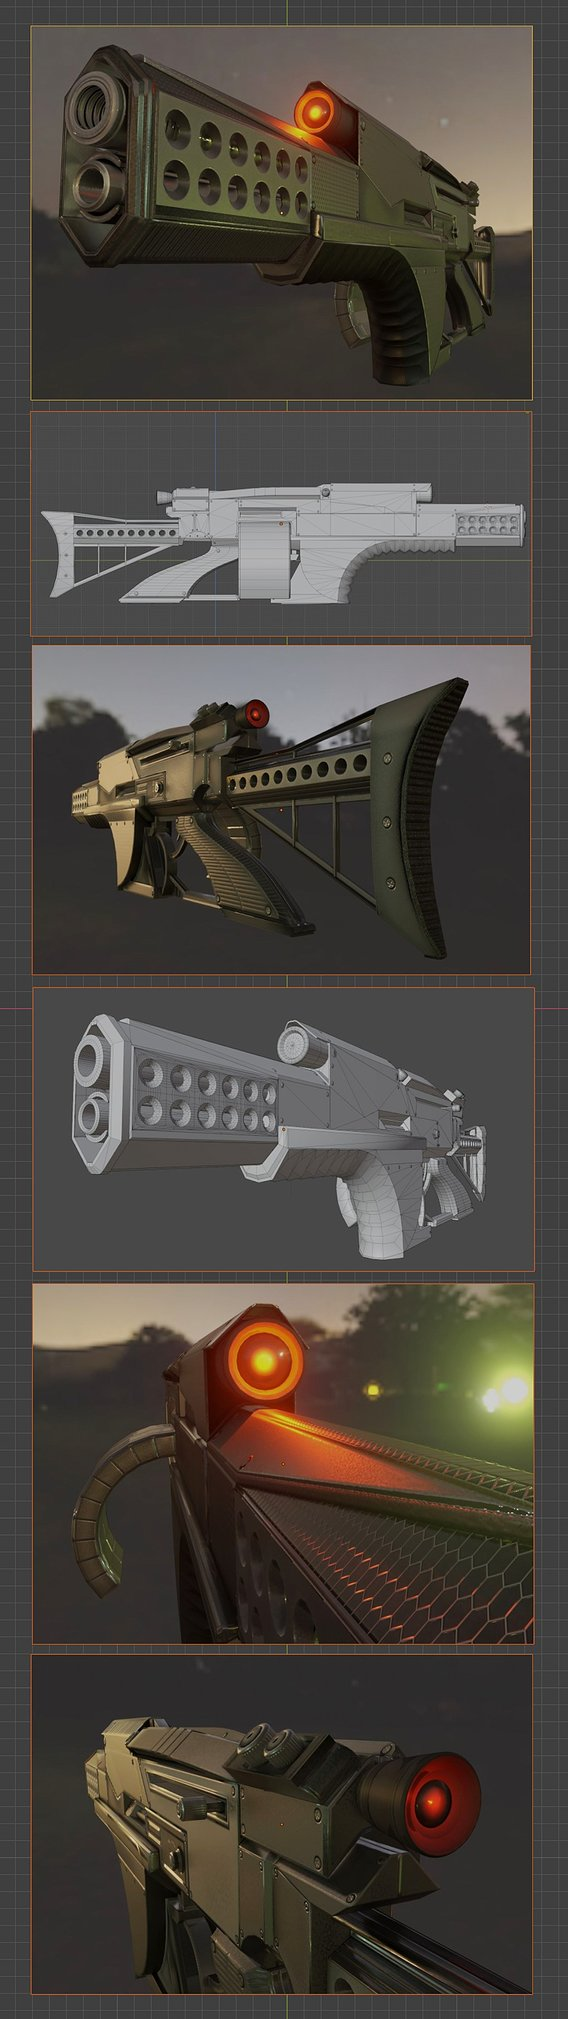 Futuristic Weapon Concept for a use in Blender-2.9